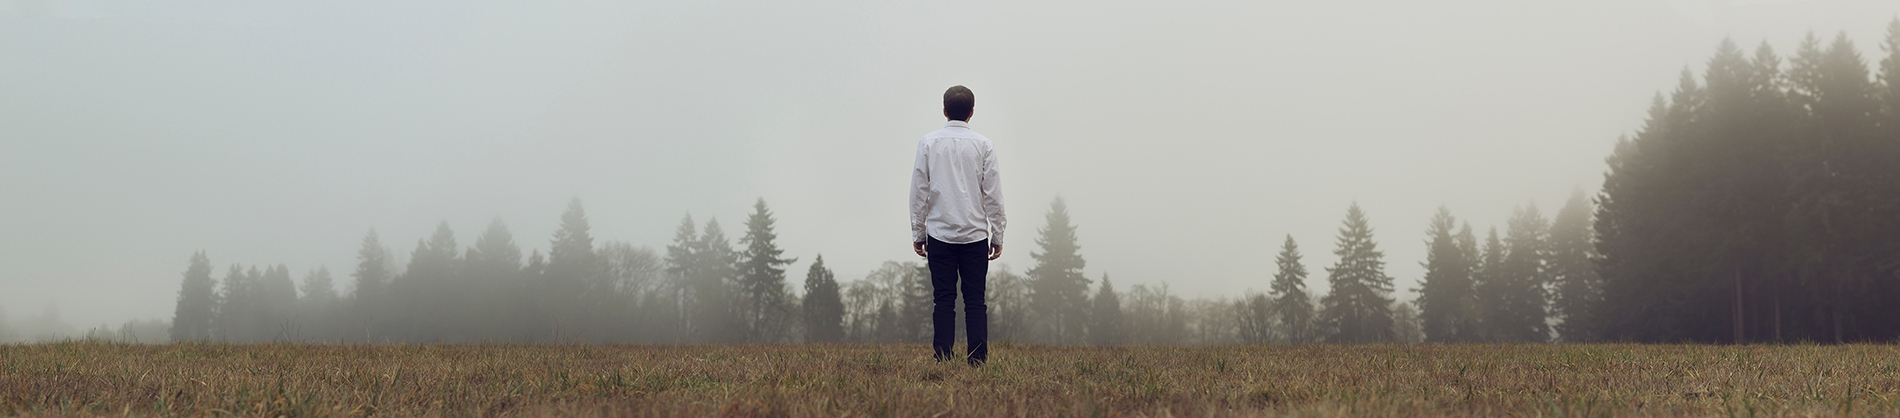 A man in a white shirt stood in a field looking towards misty trees in the distance